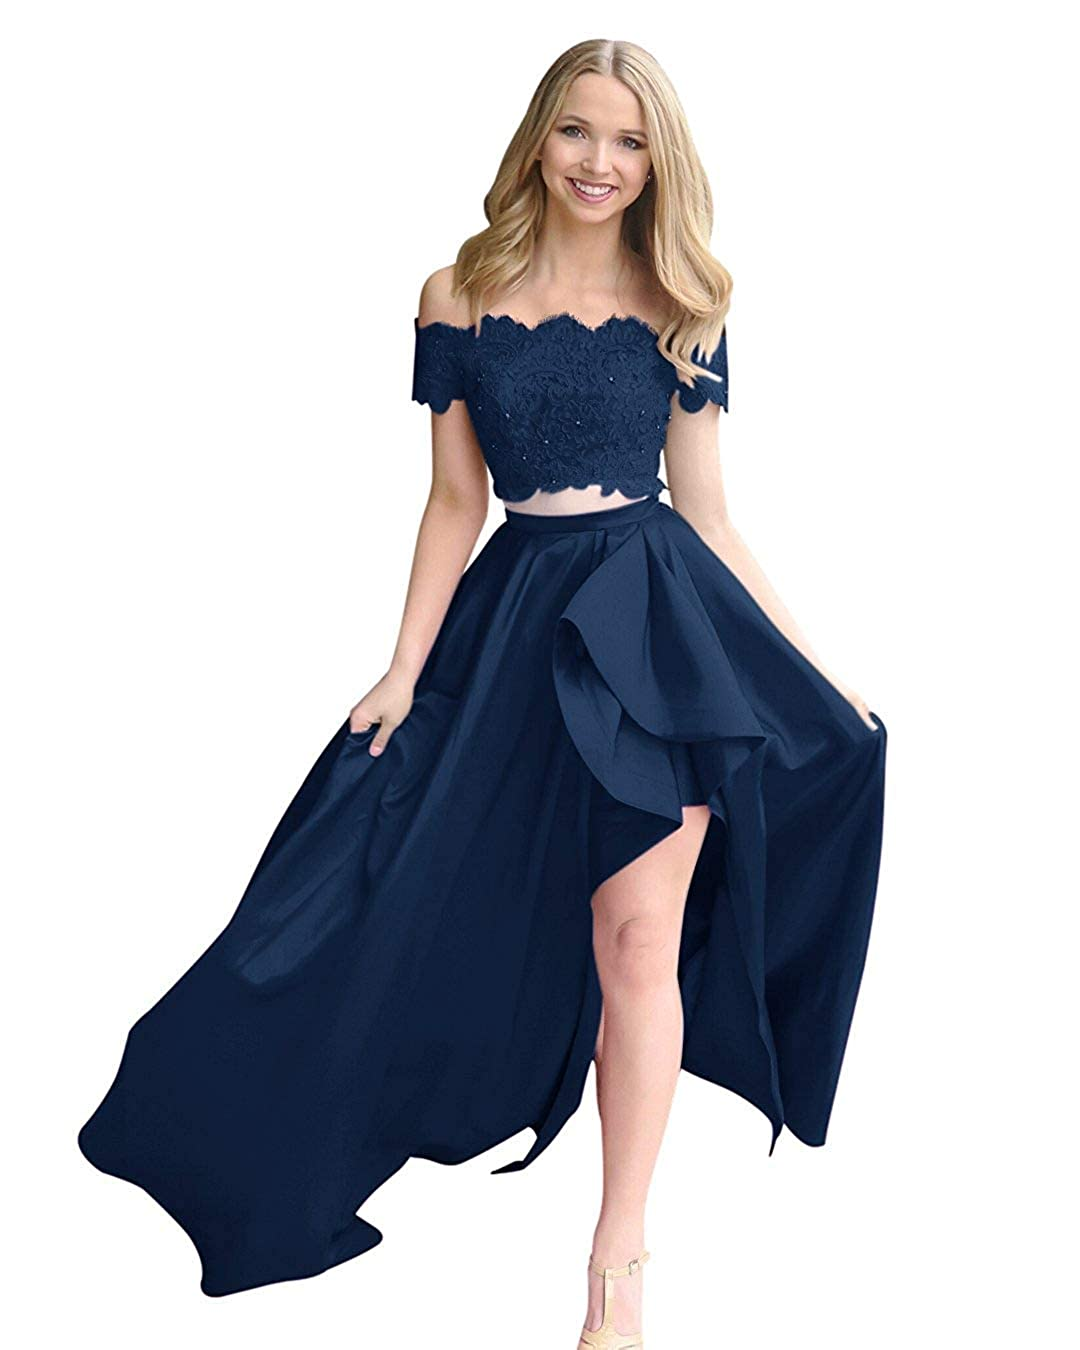 Navy bluee Fanciest Women's Two Pieces Lace Prom Dresses Long Formal Evening Party Dress